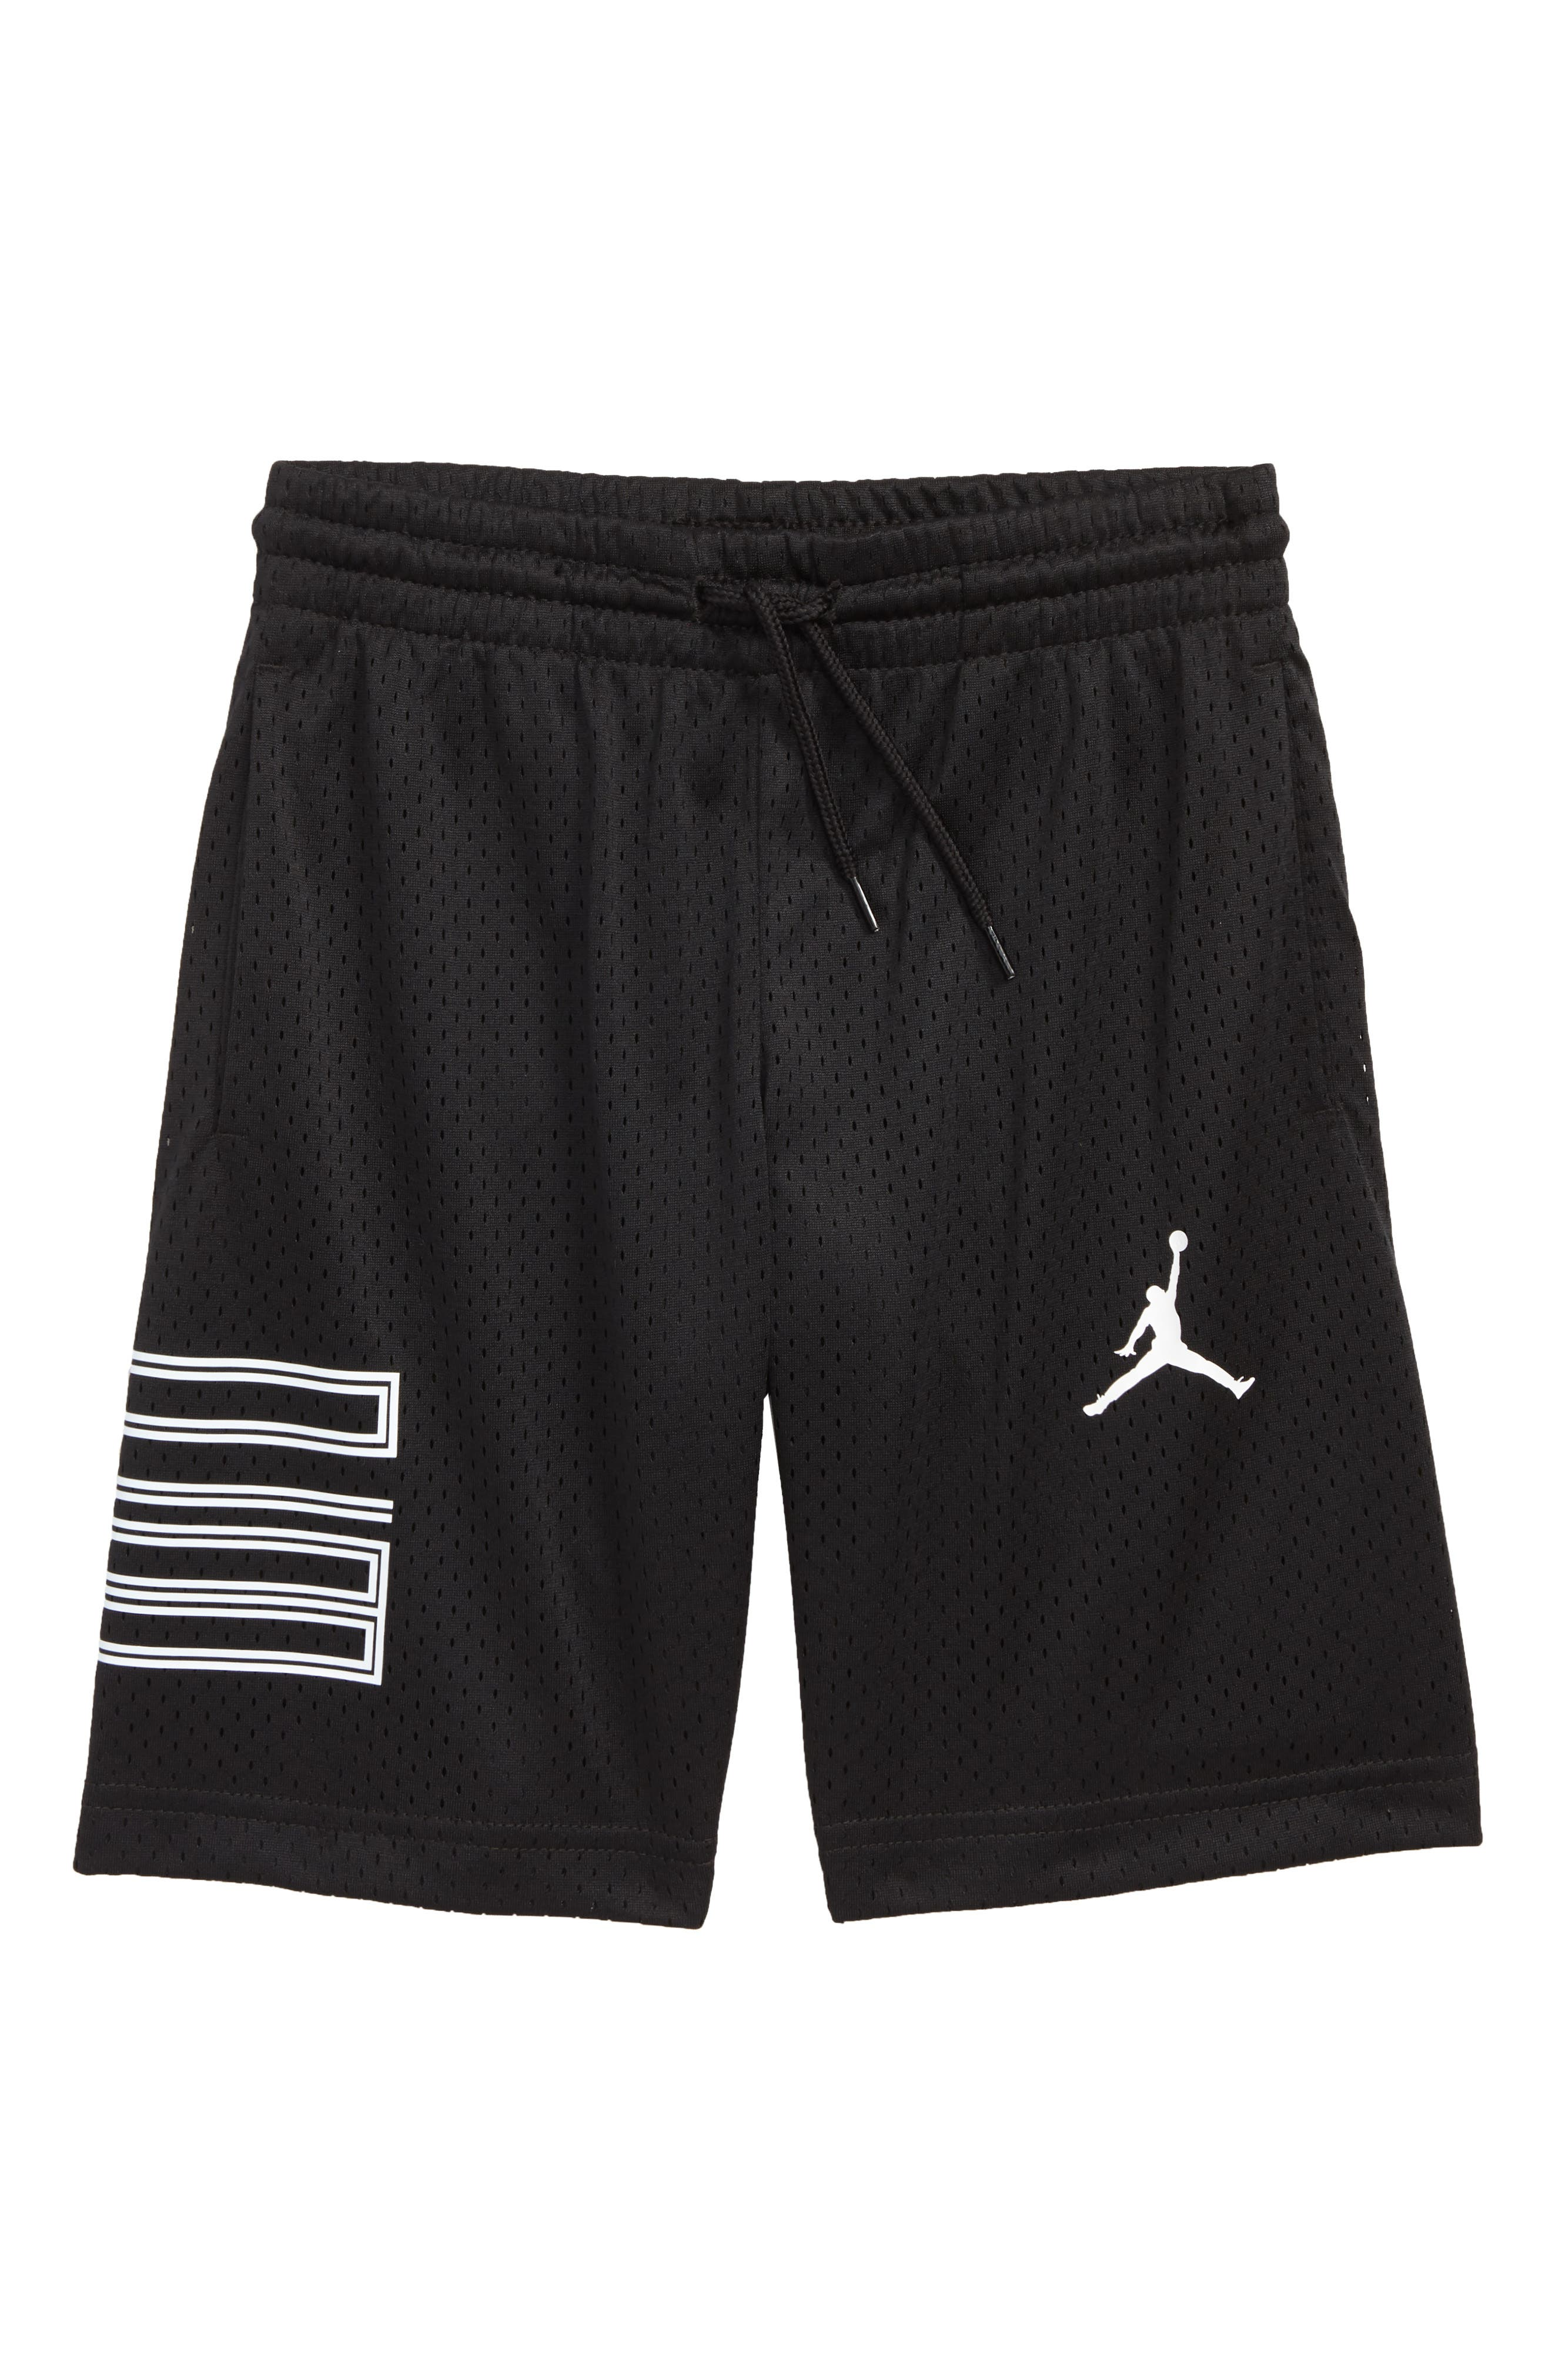 AJ11 Flight Mesh Shorts,                         Main,                         color, Black